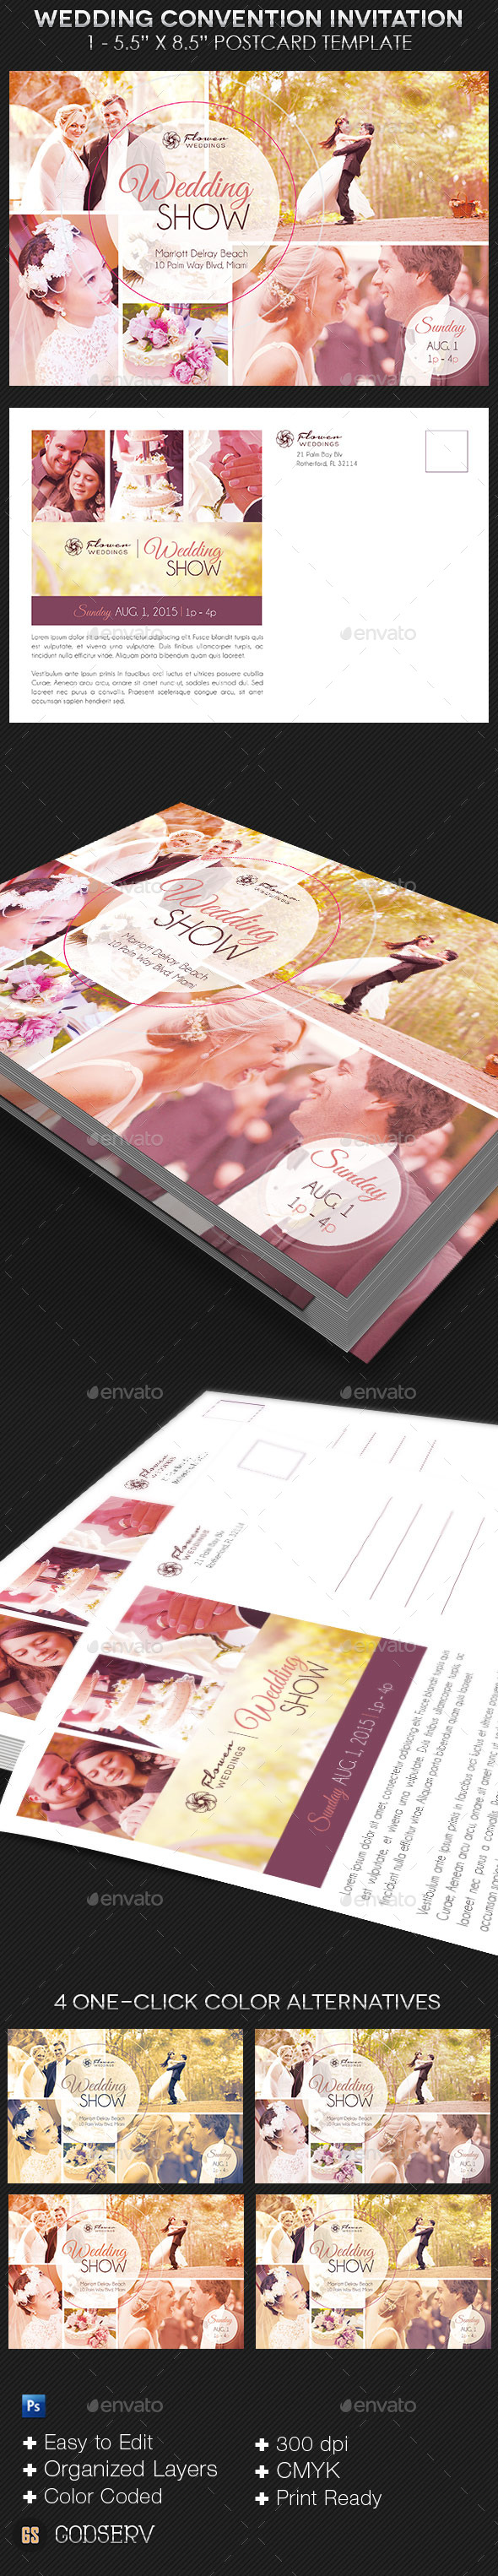 Wedding Convention Invitation Template - Invitations Cards & Invites